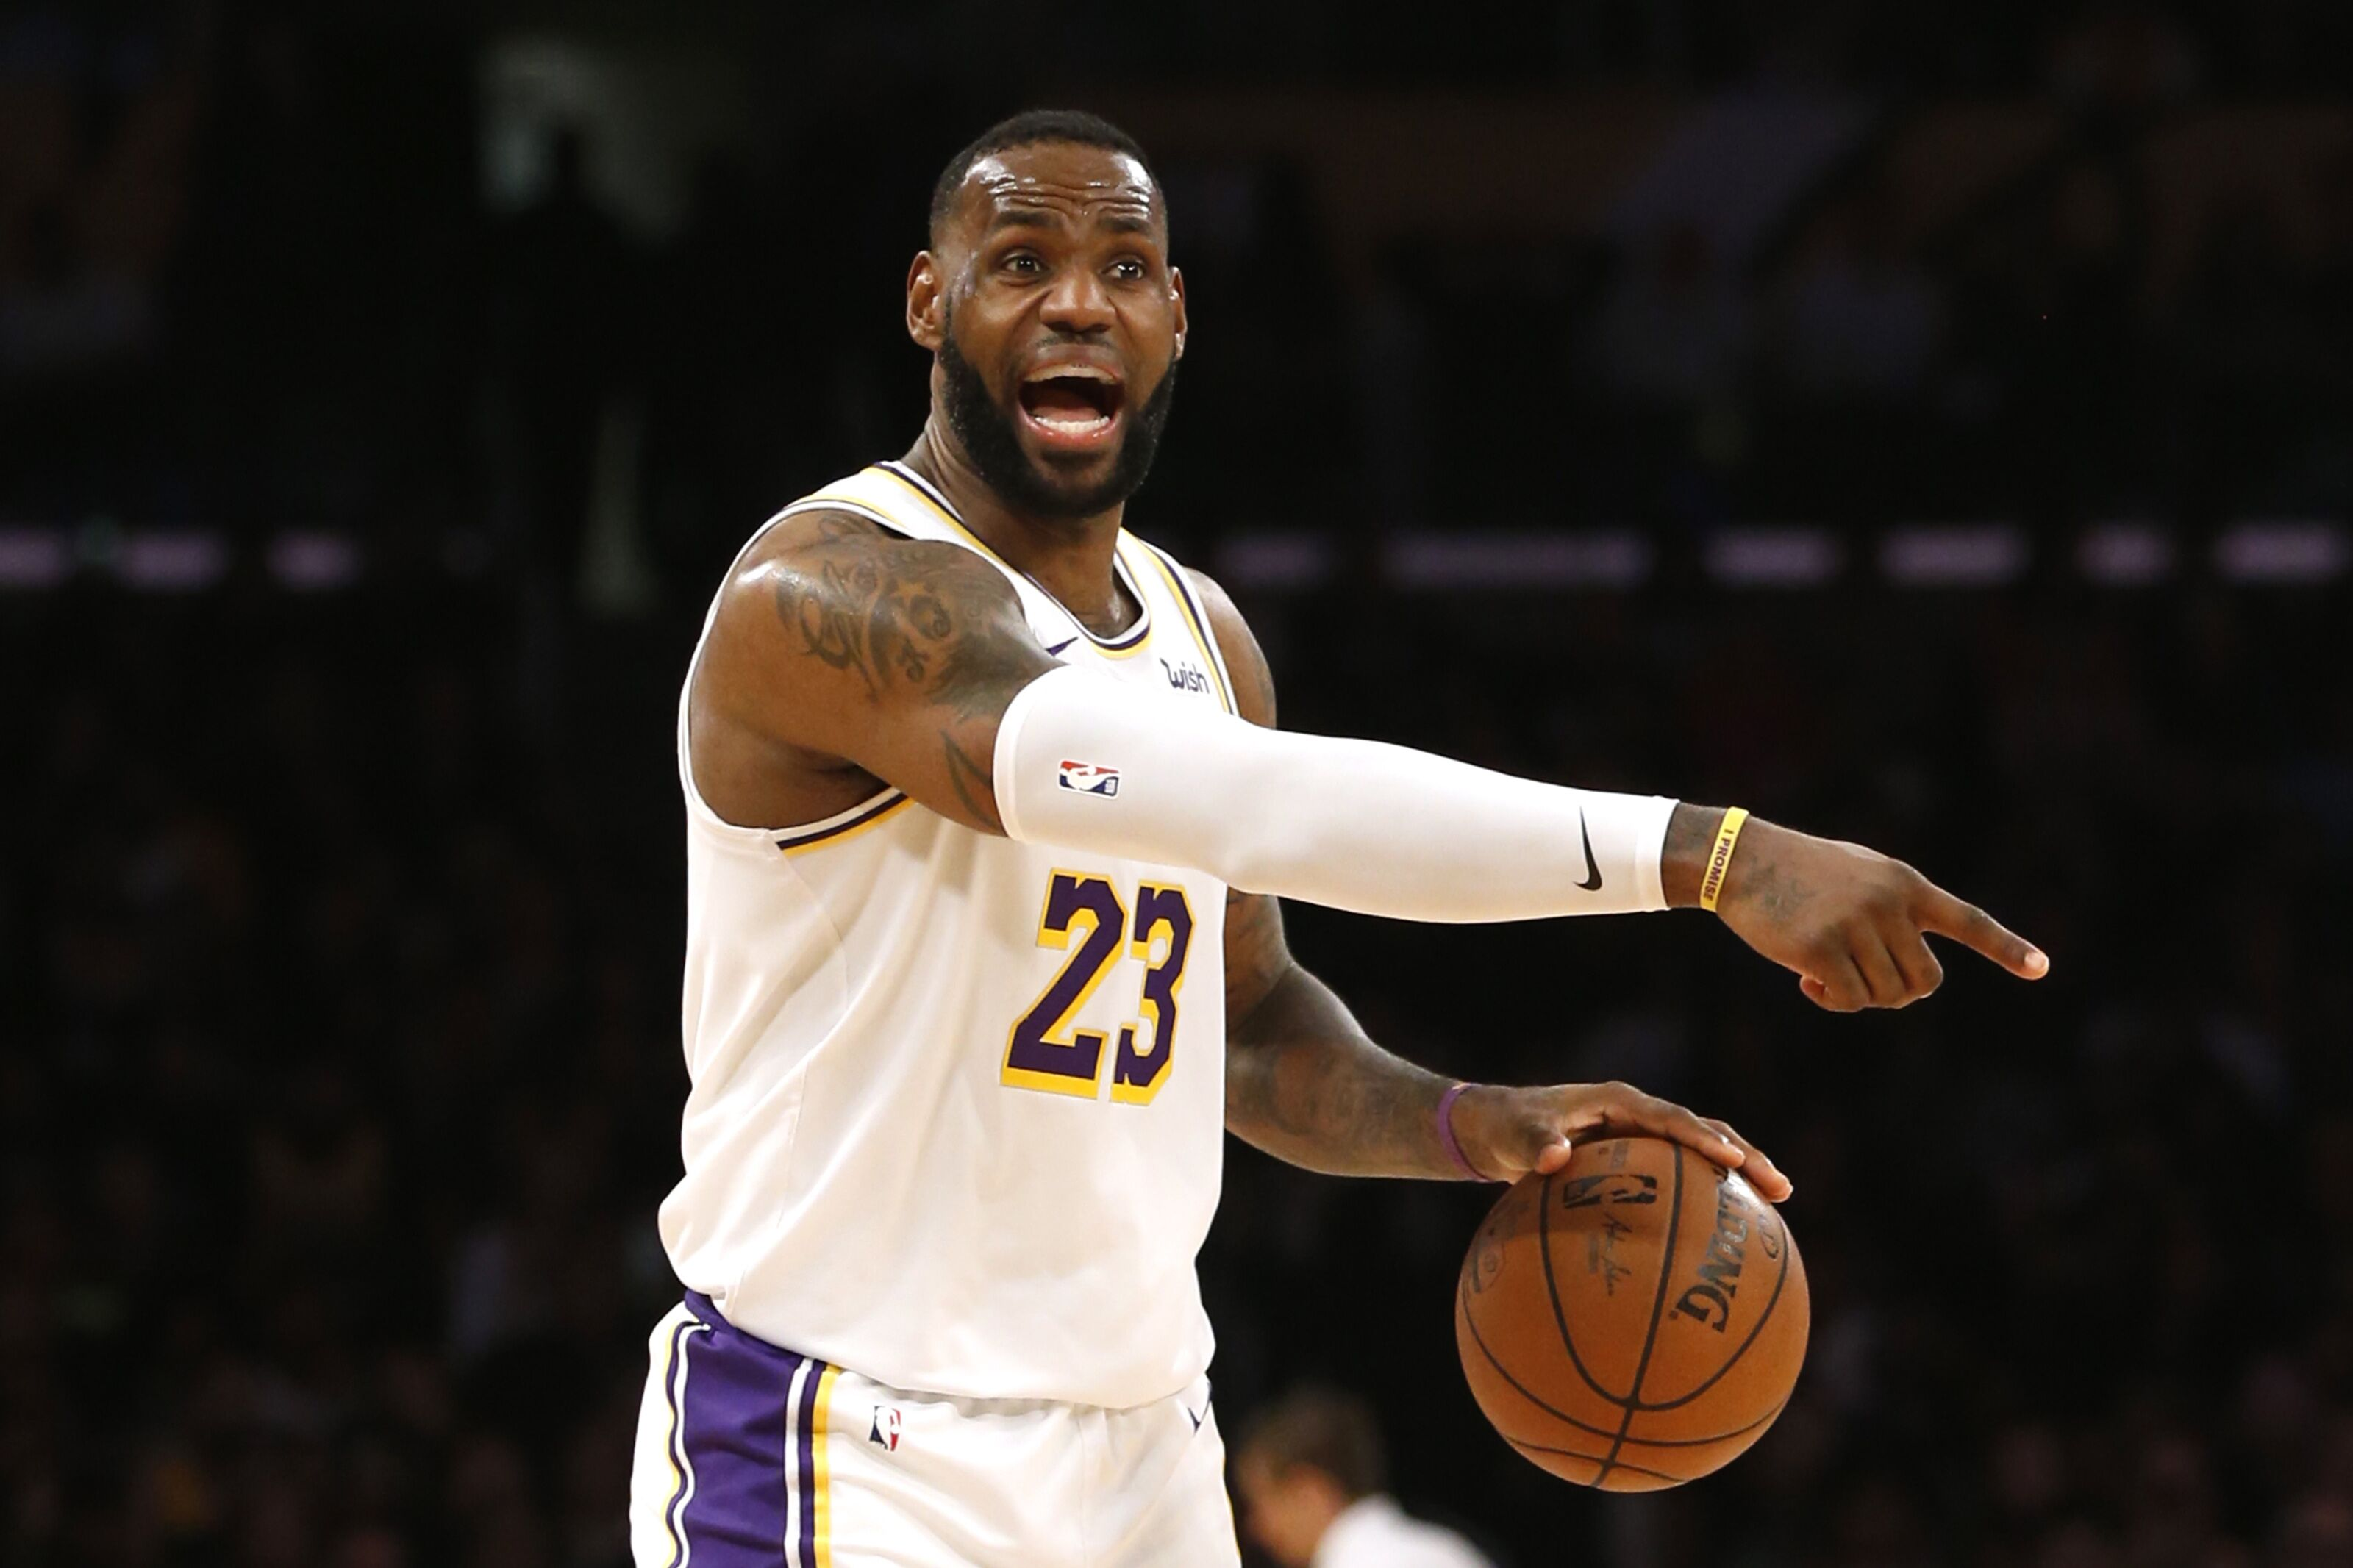 Los Angeles Lakers survive a gritty contest against the Orlando Magic